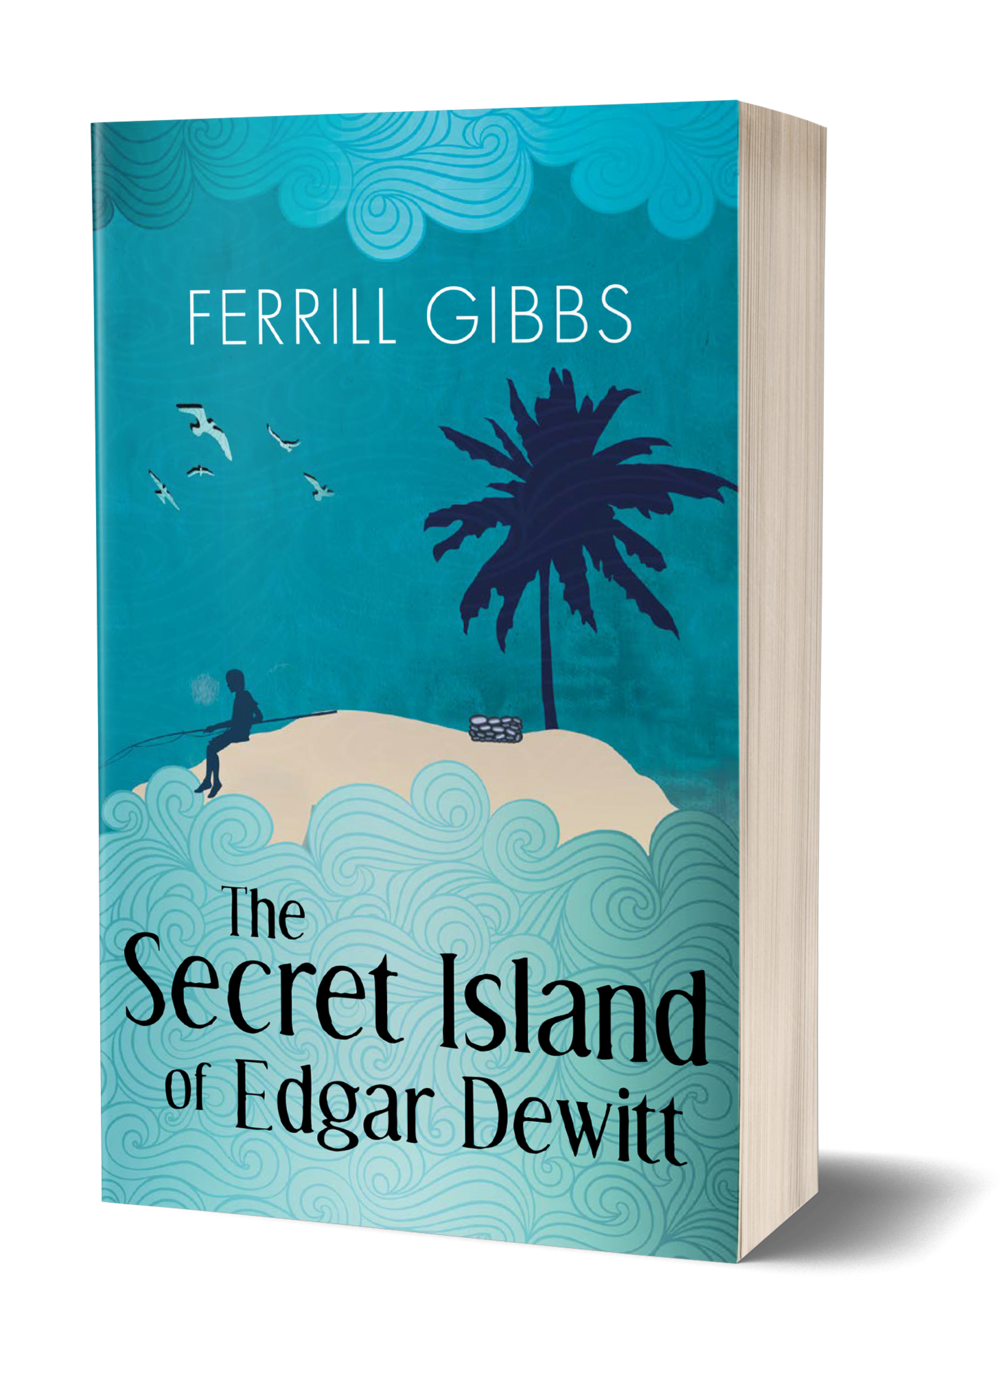 The Secret Island Of Edgar Dewitt book cover, blue background, water, island, sky, birds flying, boy fishing on island